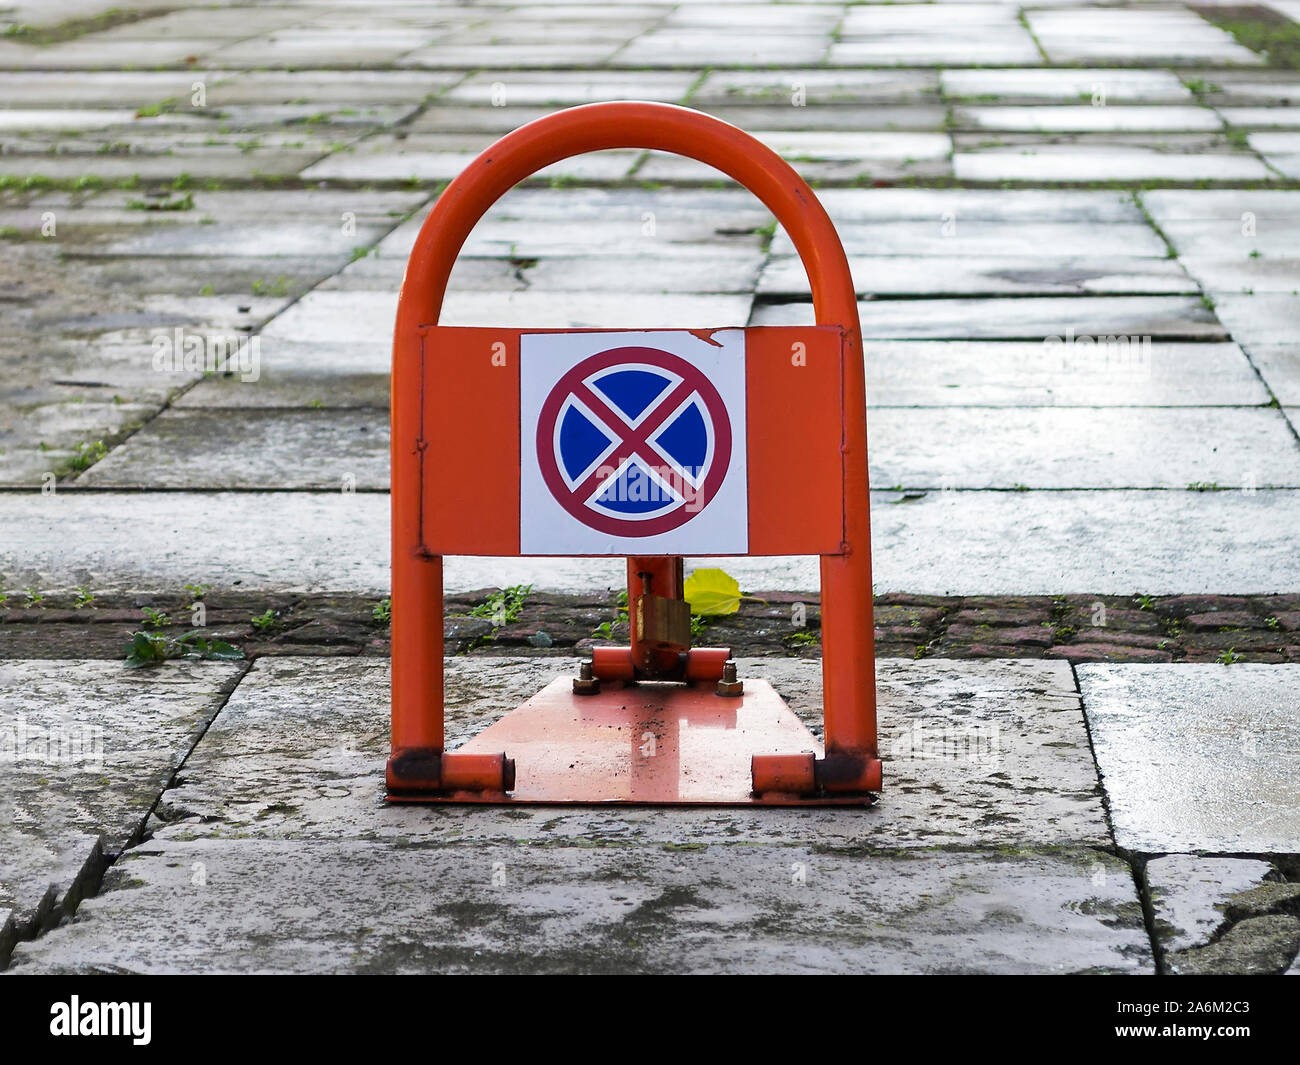 Portable road sign no stopping or parking on an orange car parking lock device over wet concrete slabs near building. Traffic rules,  prohibitory sign Stock Photo